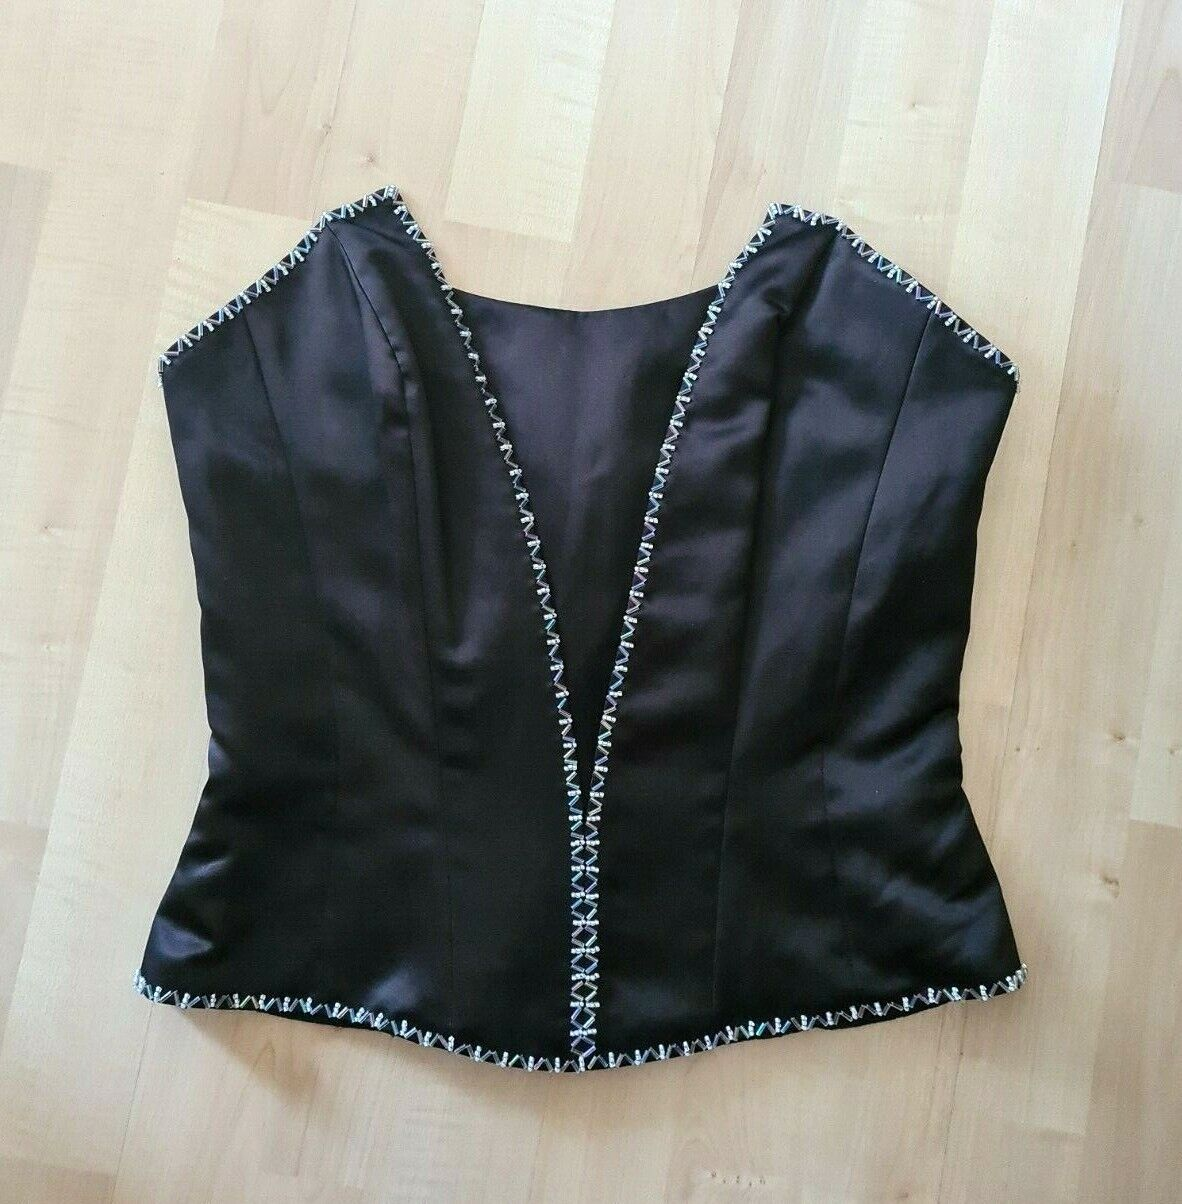 IMPRESSION Bridal Corset Black Strapless Formal Top 1014 Beaded Size 10 NWT